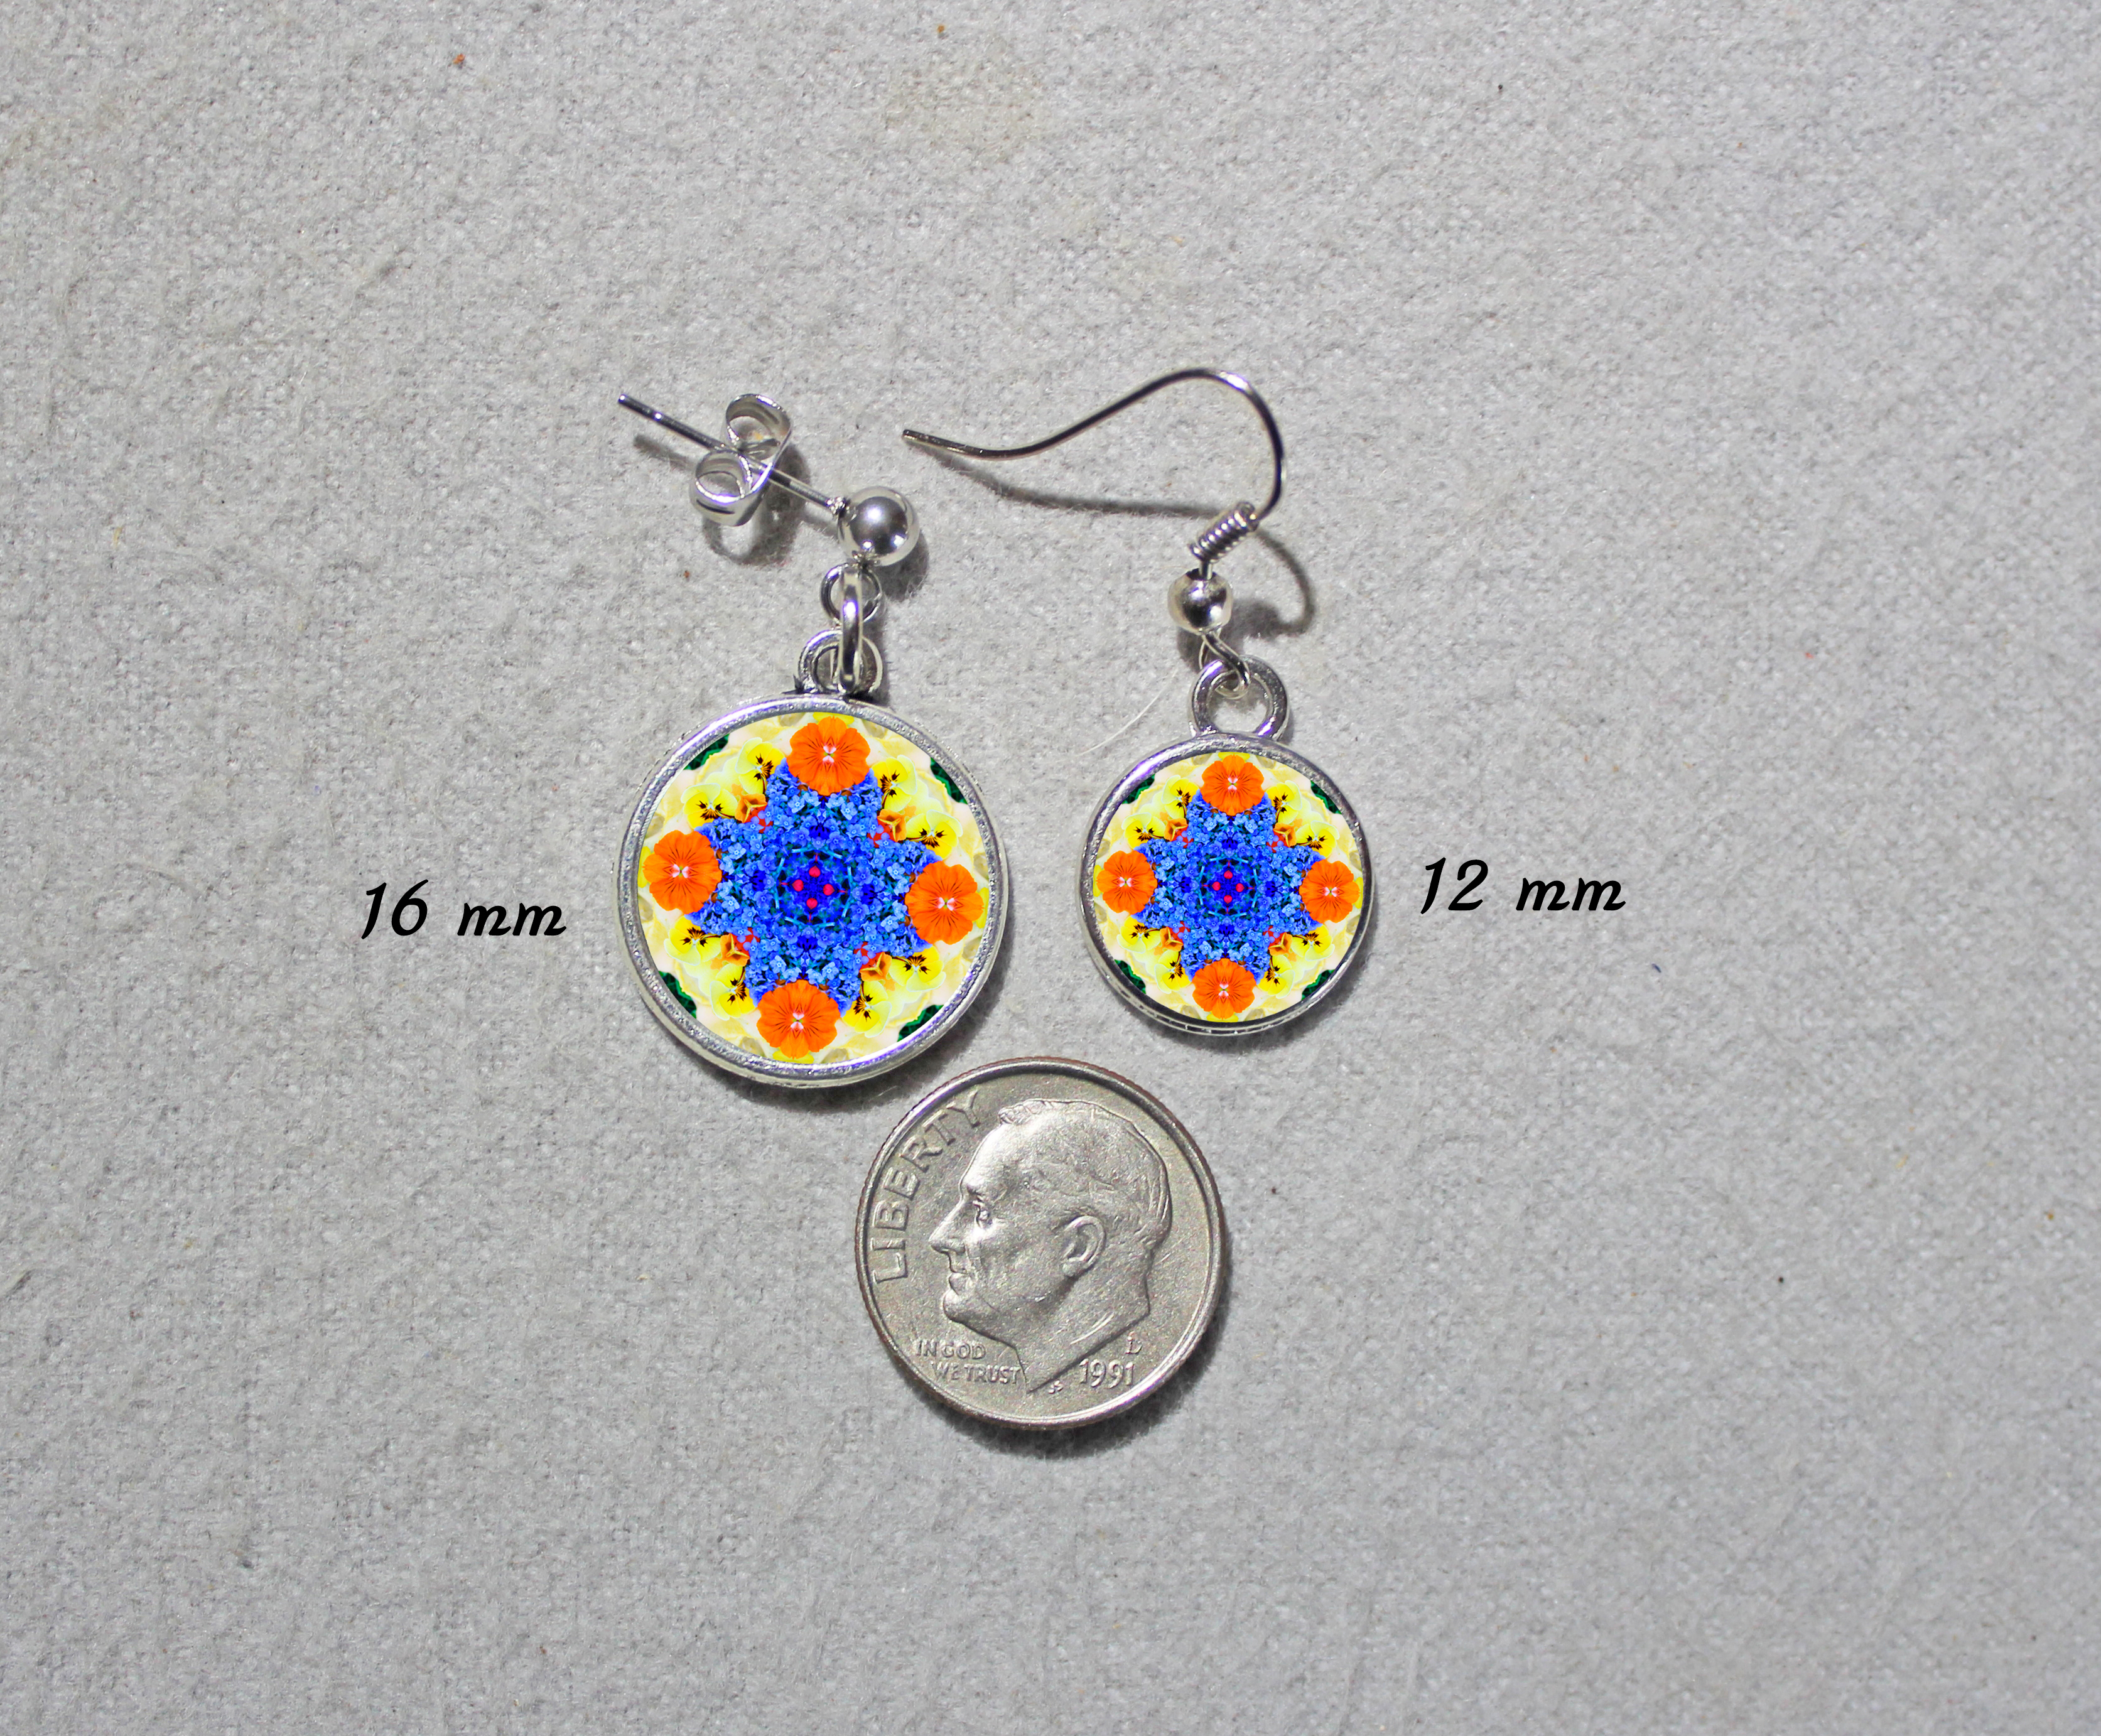 Earrings Dainty Tiny Double Sided Dangle Forget Me Not Mandala Tender Tribute